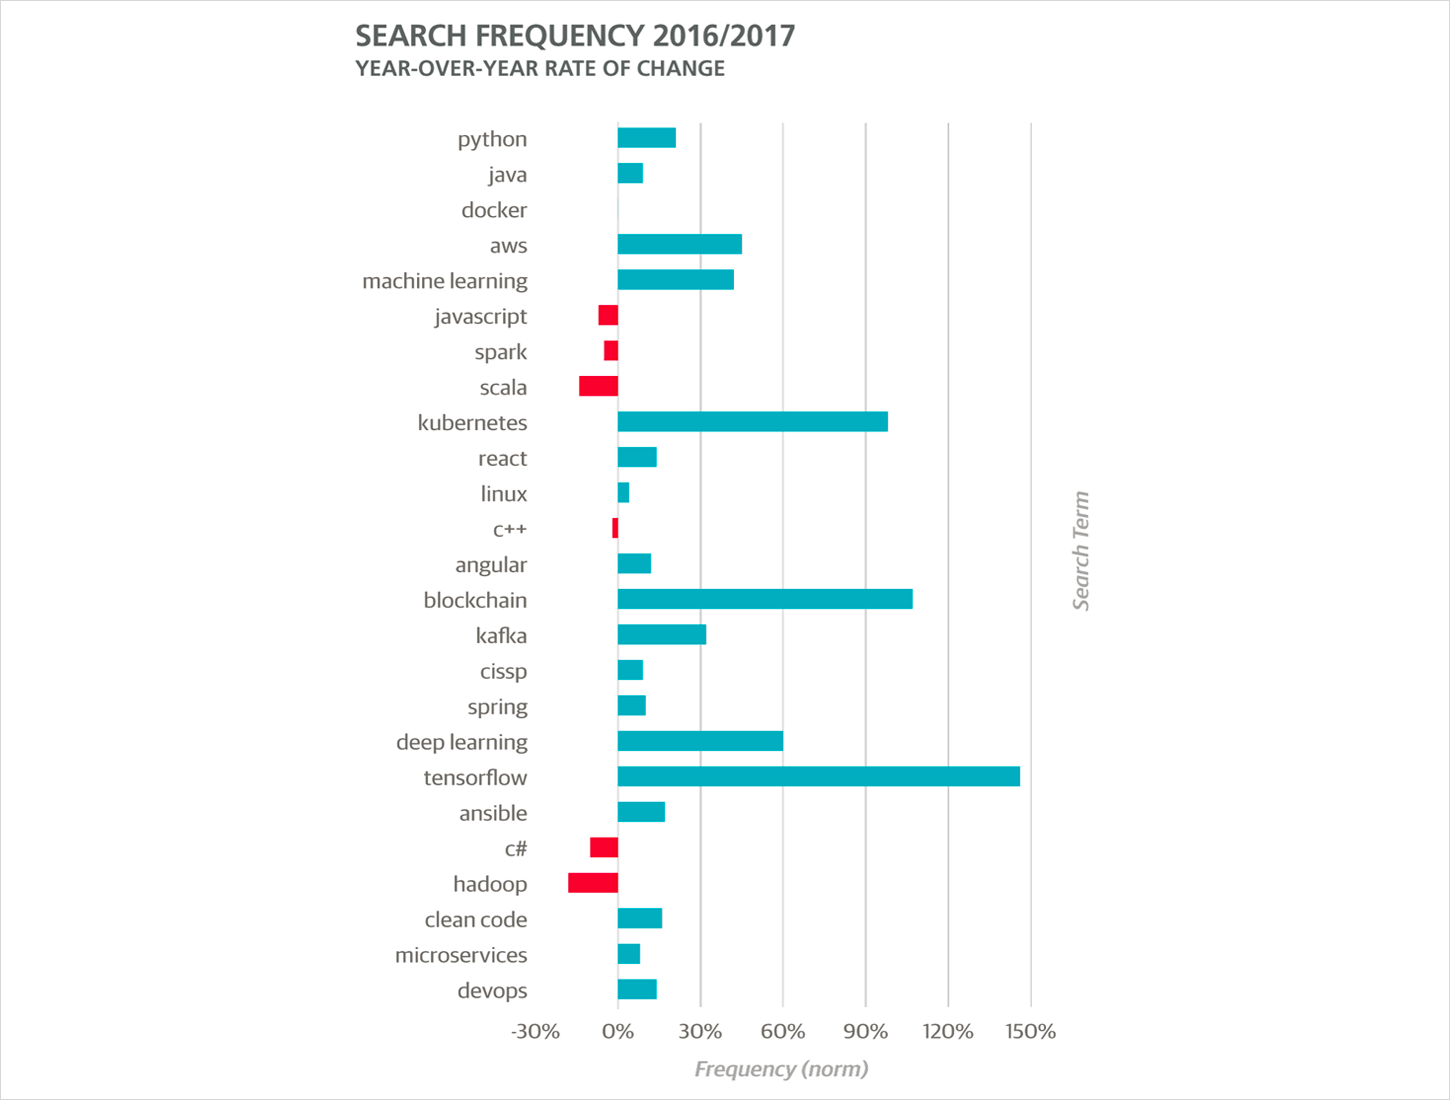 top 25 search terms and their year-over-year rate of change in search frequency